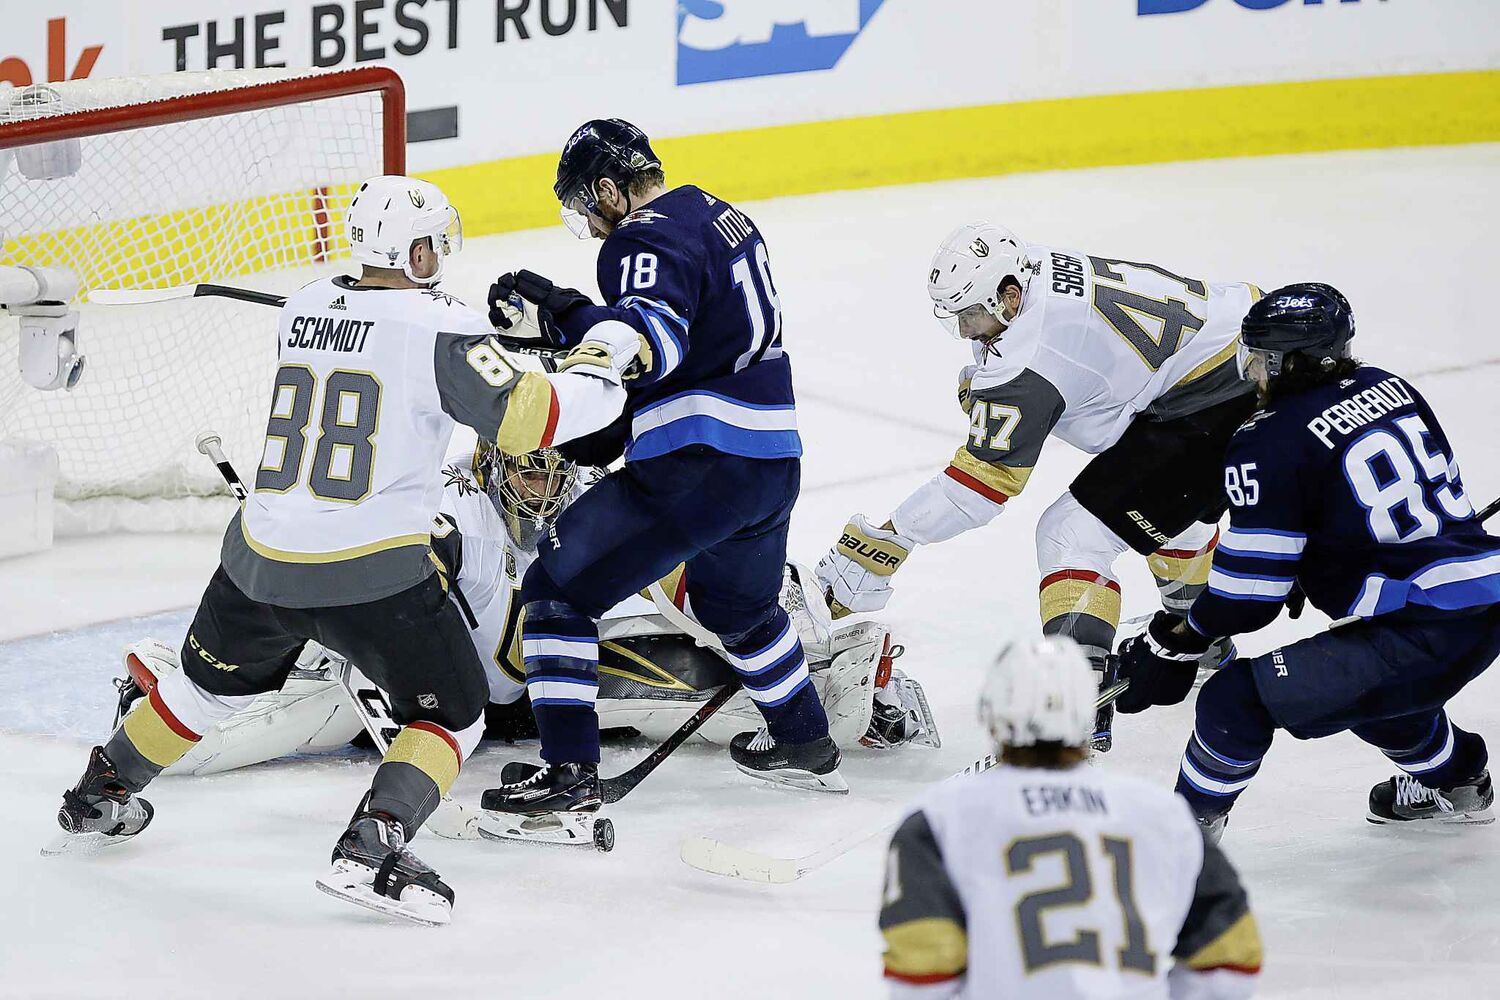 JOHN WOODS / THE CANADIAN PRESS</p><pVegas Golden Knights goaltender Marc-Andre Fleury (29) keeps his eye on the puck as Nate Schmidt (88) and Luca Sbisa (47) defend against Winnipeg Jets' Bryan Little (18) and Mathieu Perreault (85) during third period of game one action in the NHL Western Conference Final in Winnipeg on Saturday, May 12, 2018.</p>